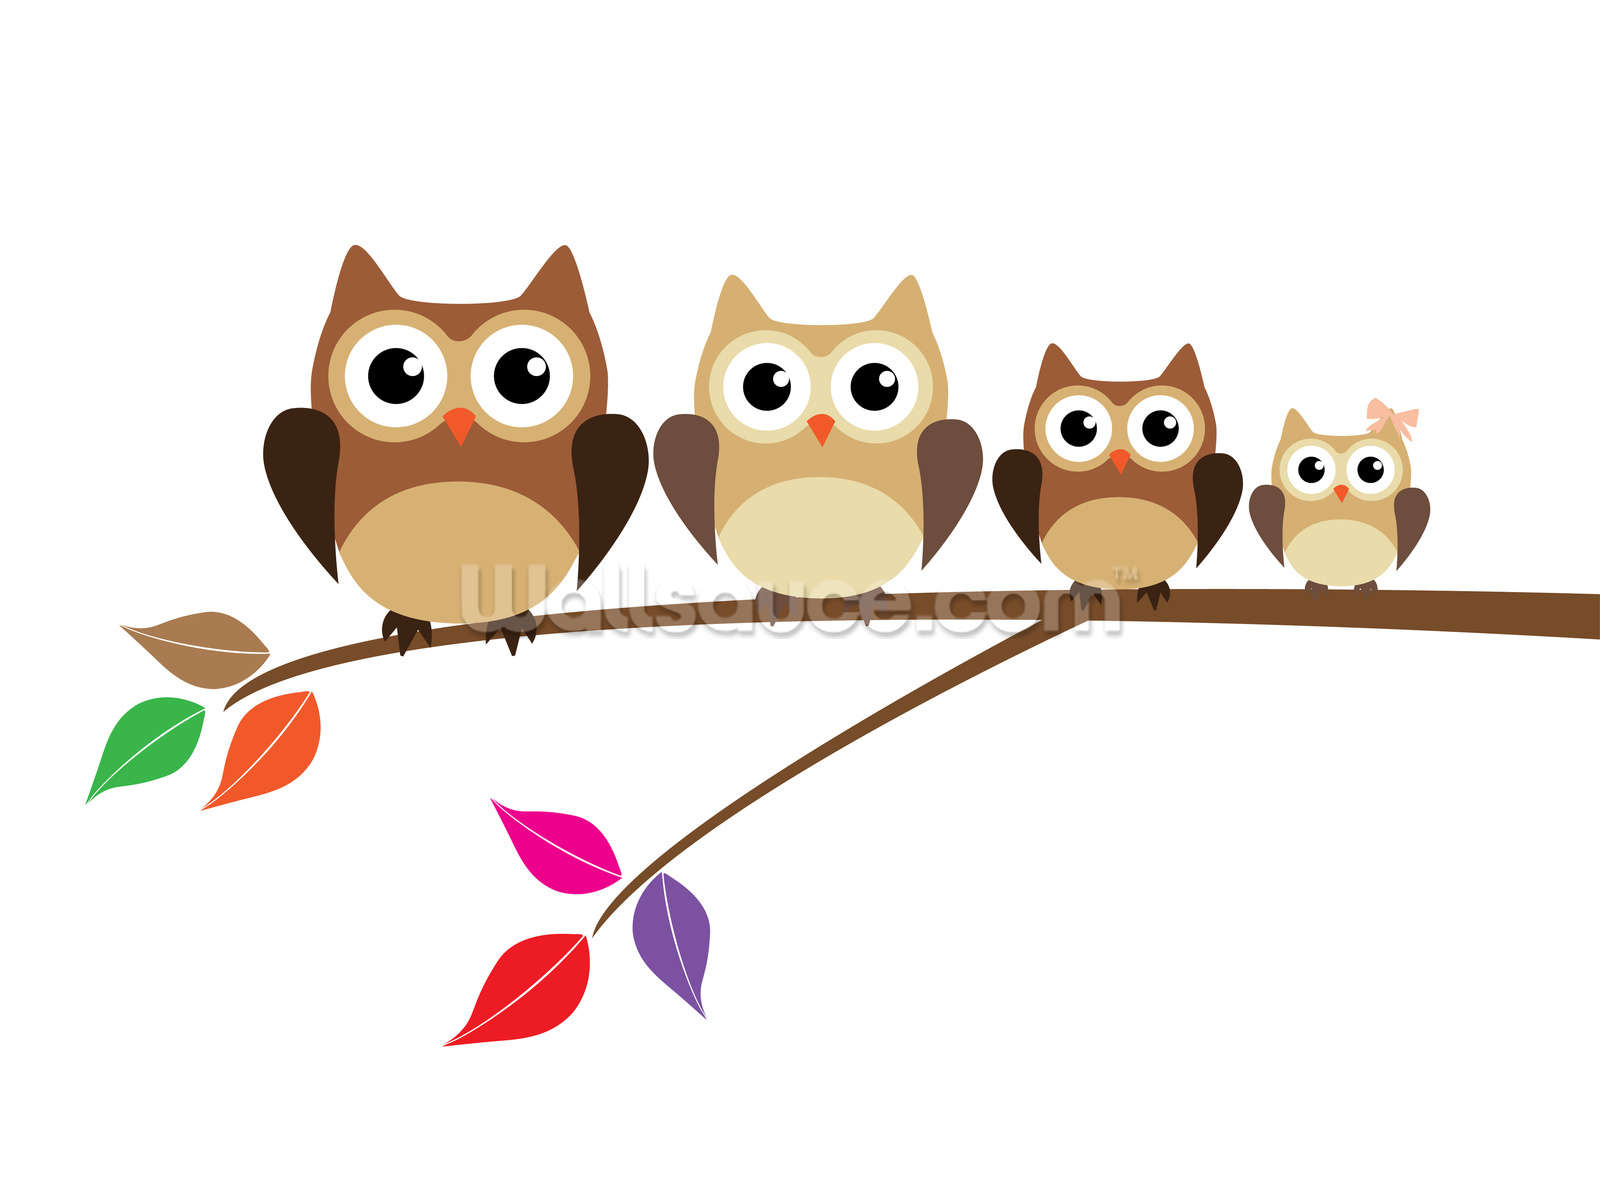 Owl Family Wallpaper